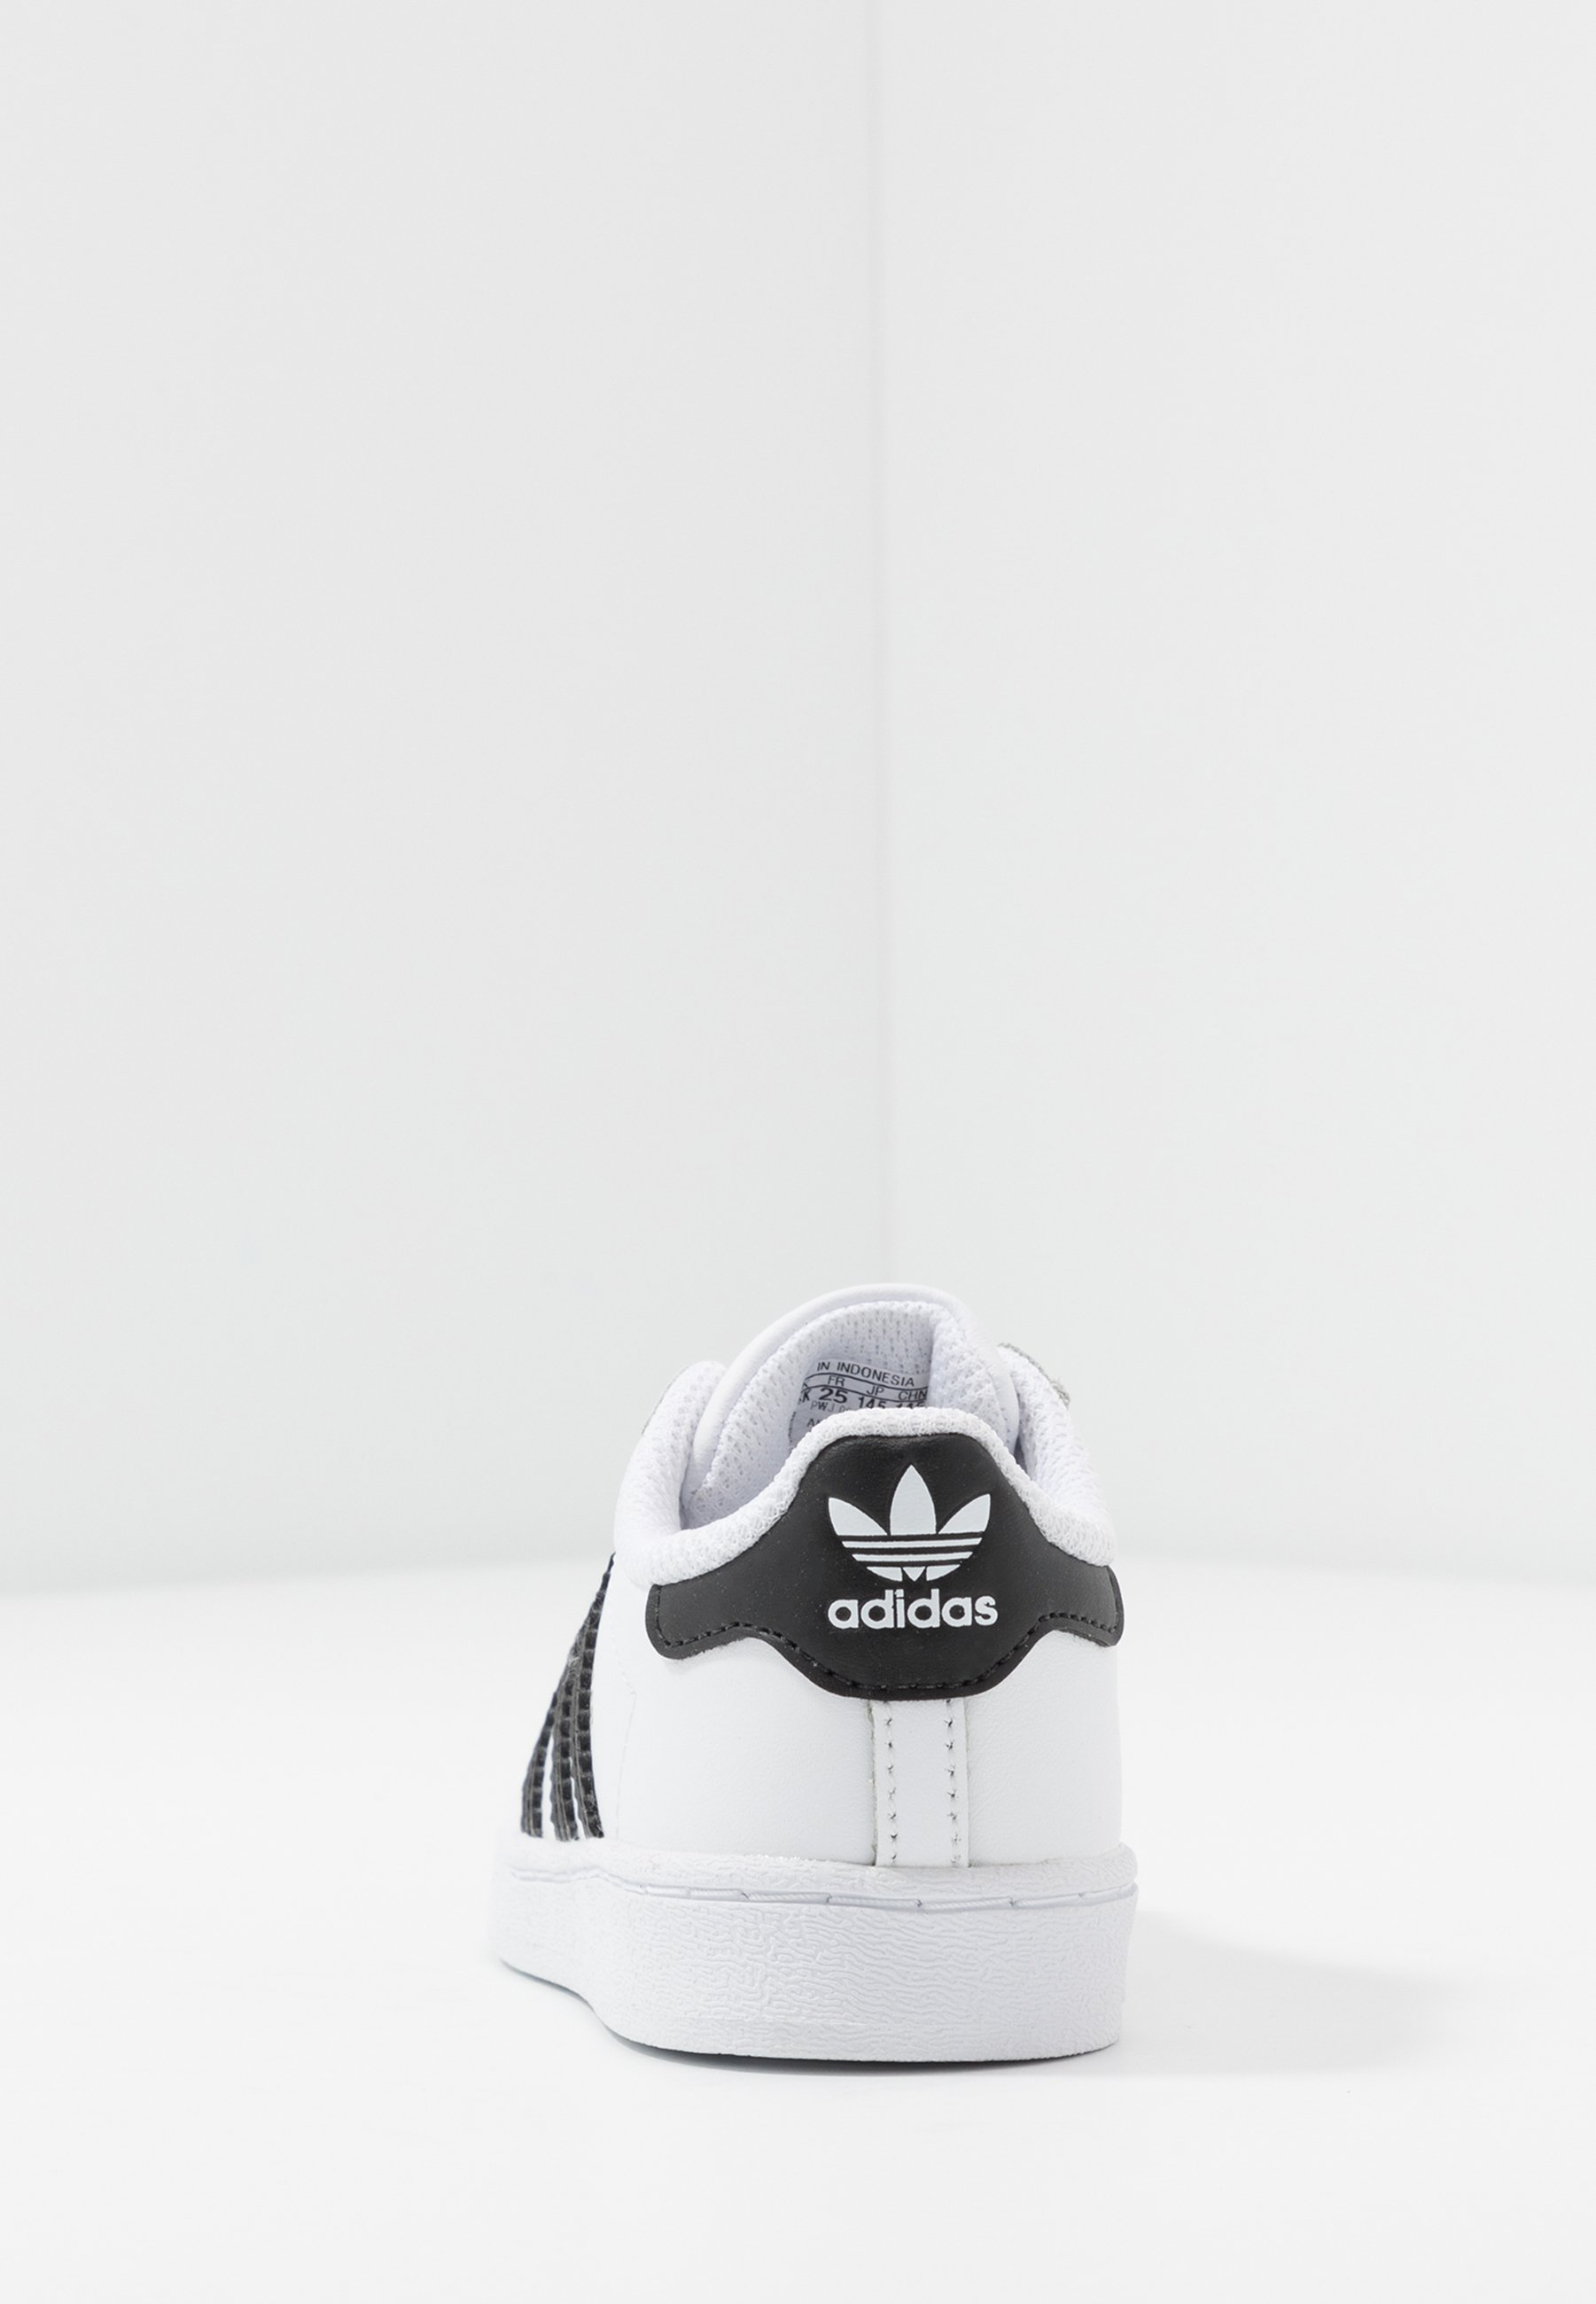 Adidas Originals Superstar Sports Inspired Shoes - Trainers Footwear White/core Black